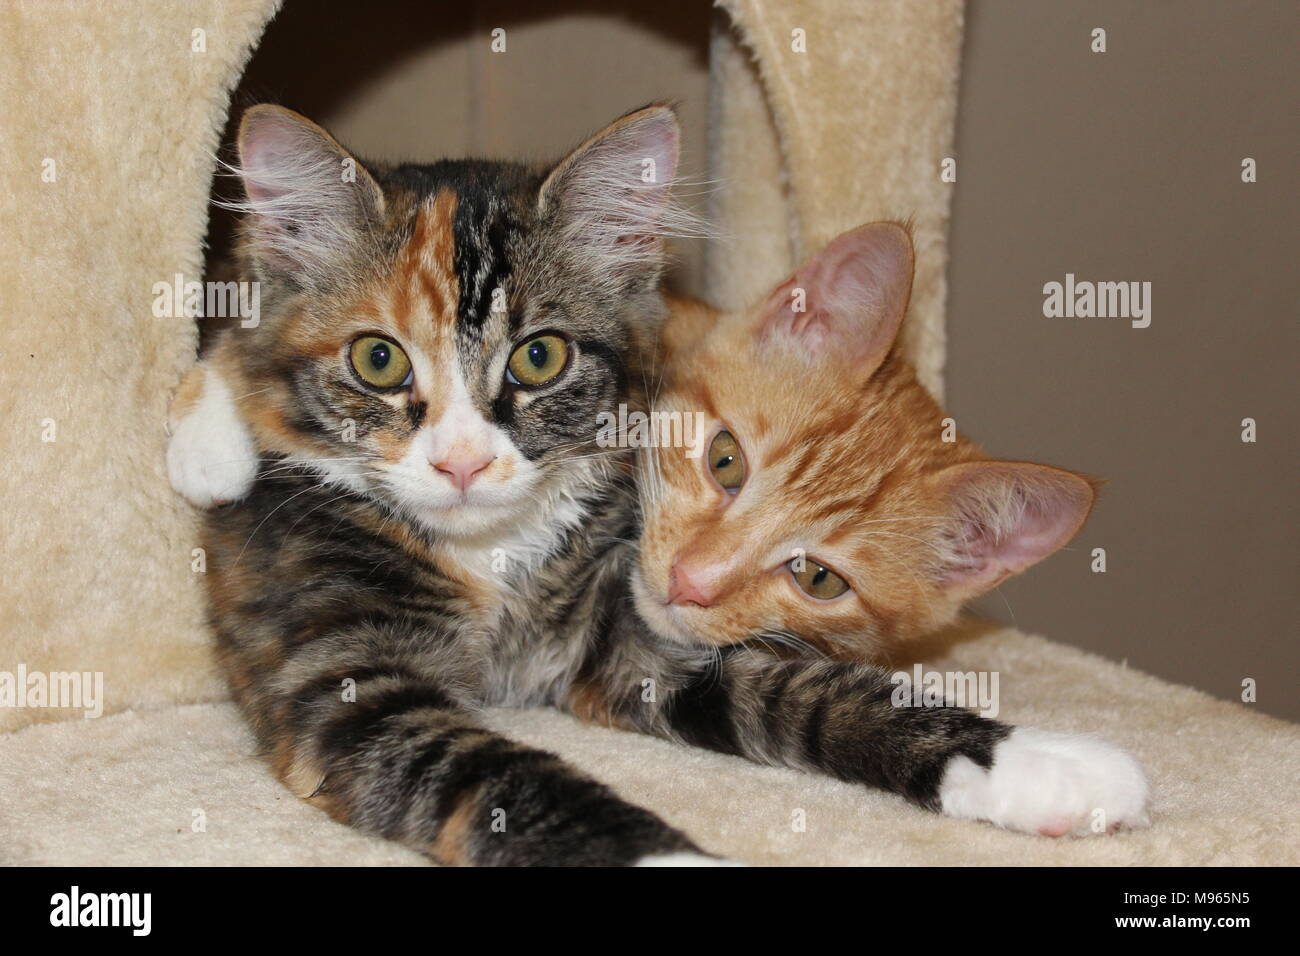 Kittens showing some brotherly love - Stock Image